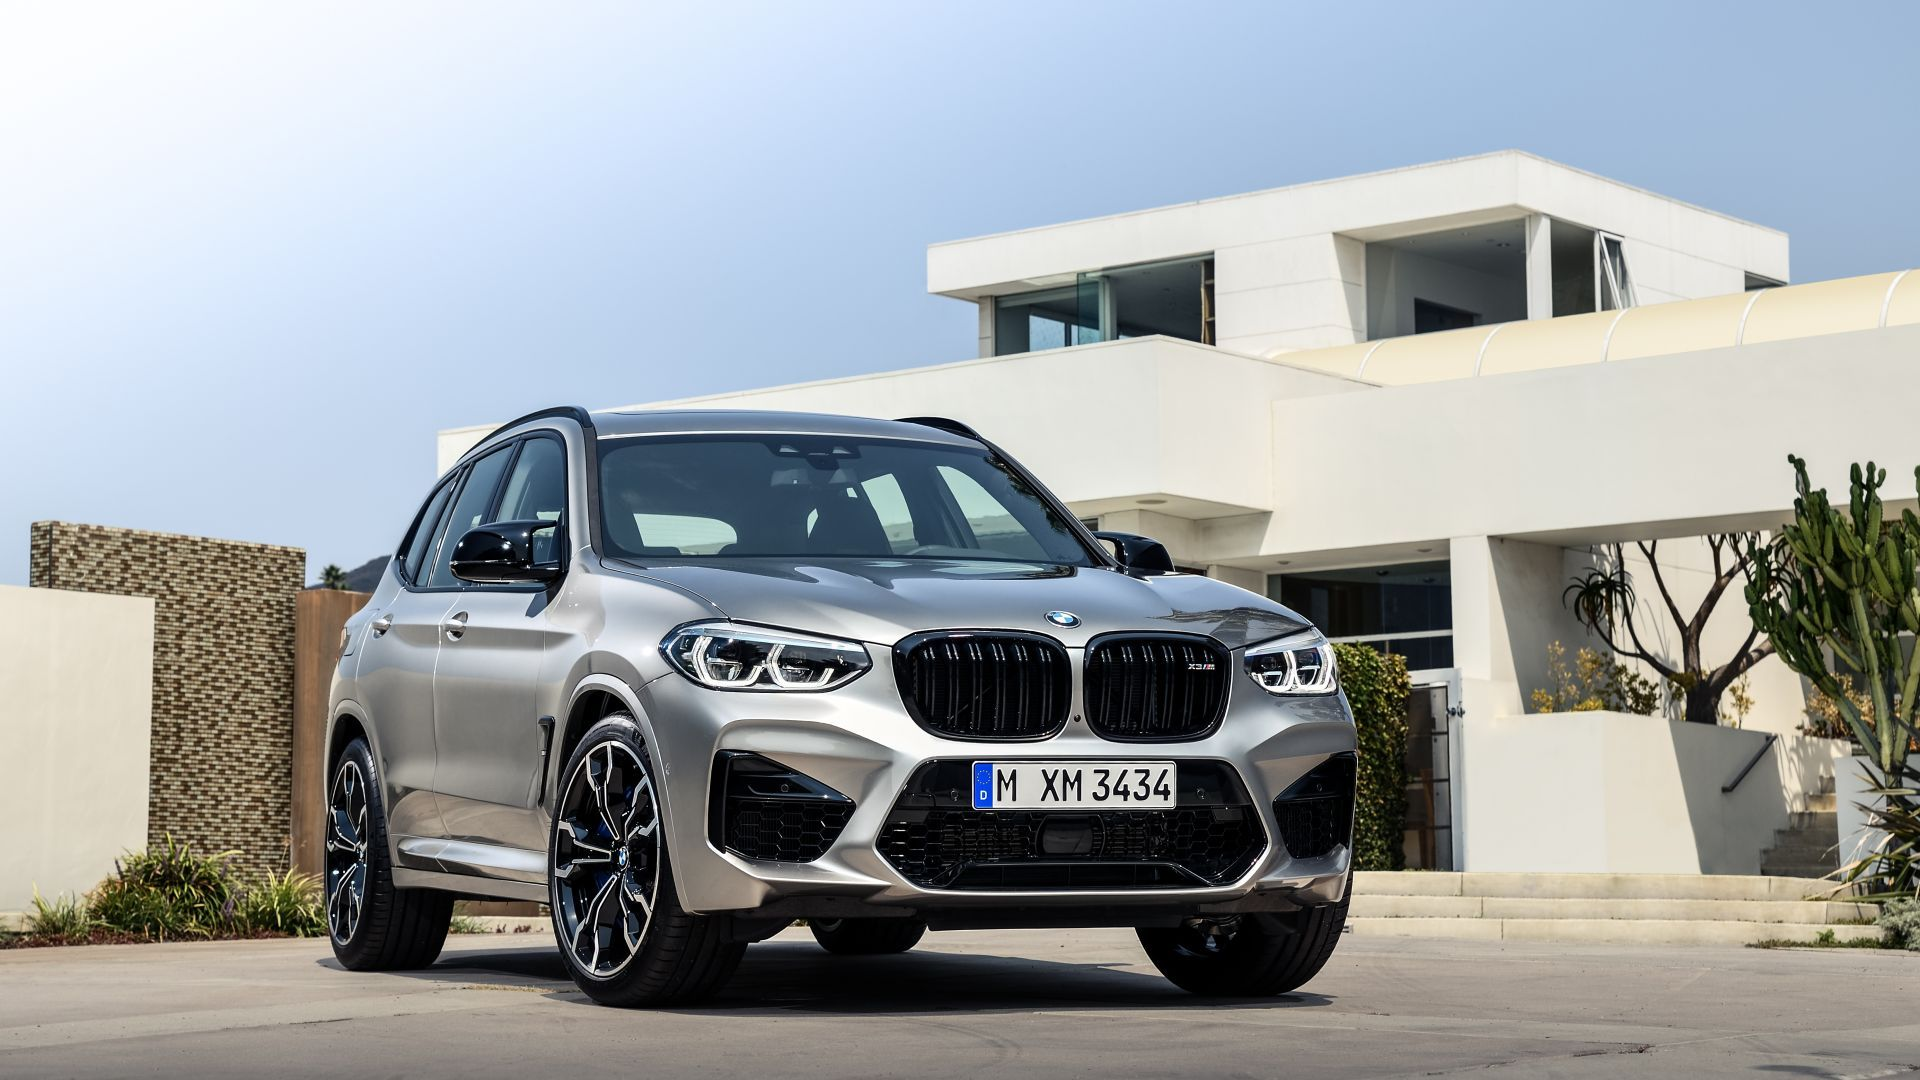 Wallpaper Bmw X3 M Competition Geneva Motor Show 2019 Suv 2020